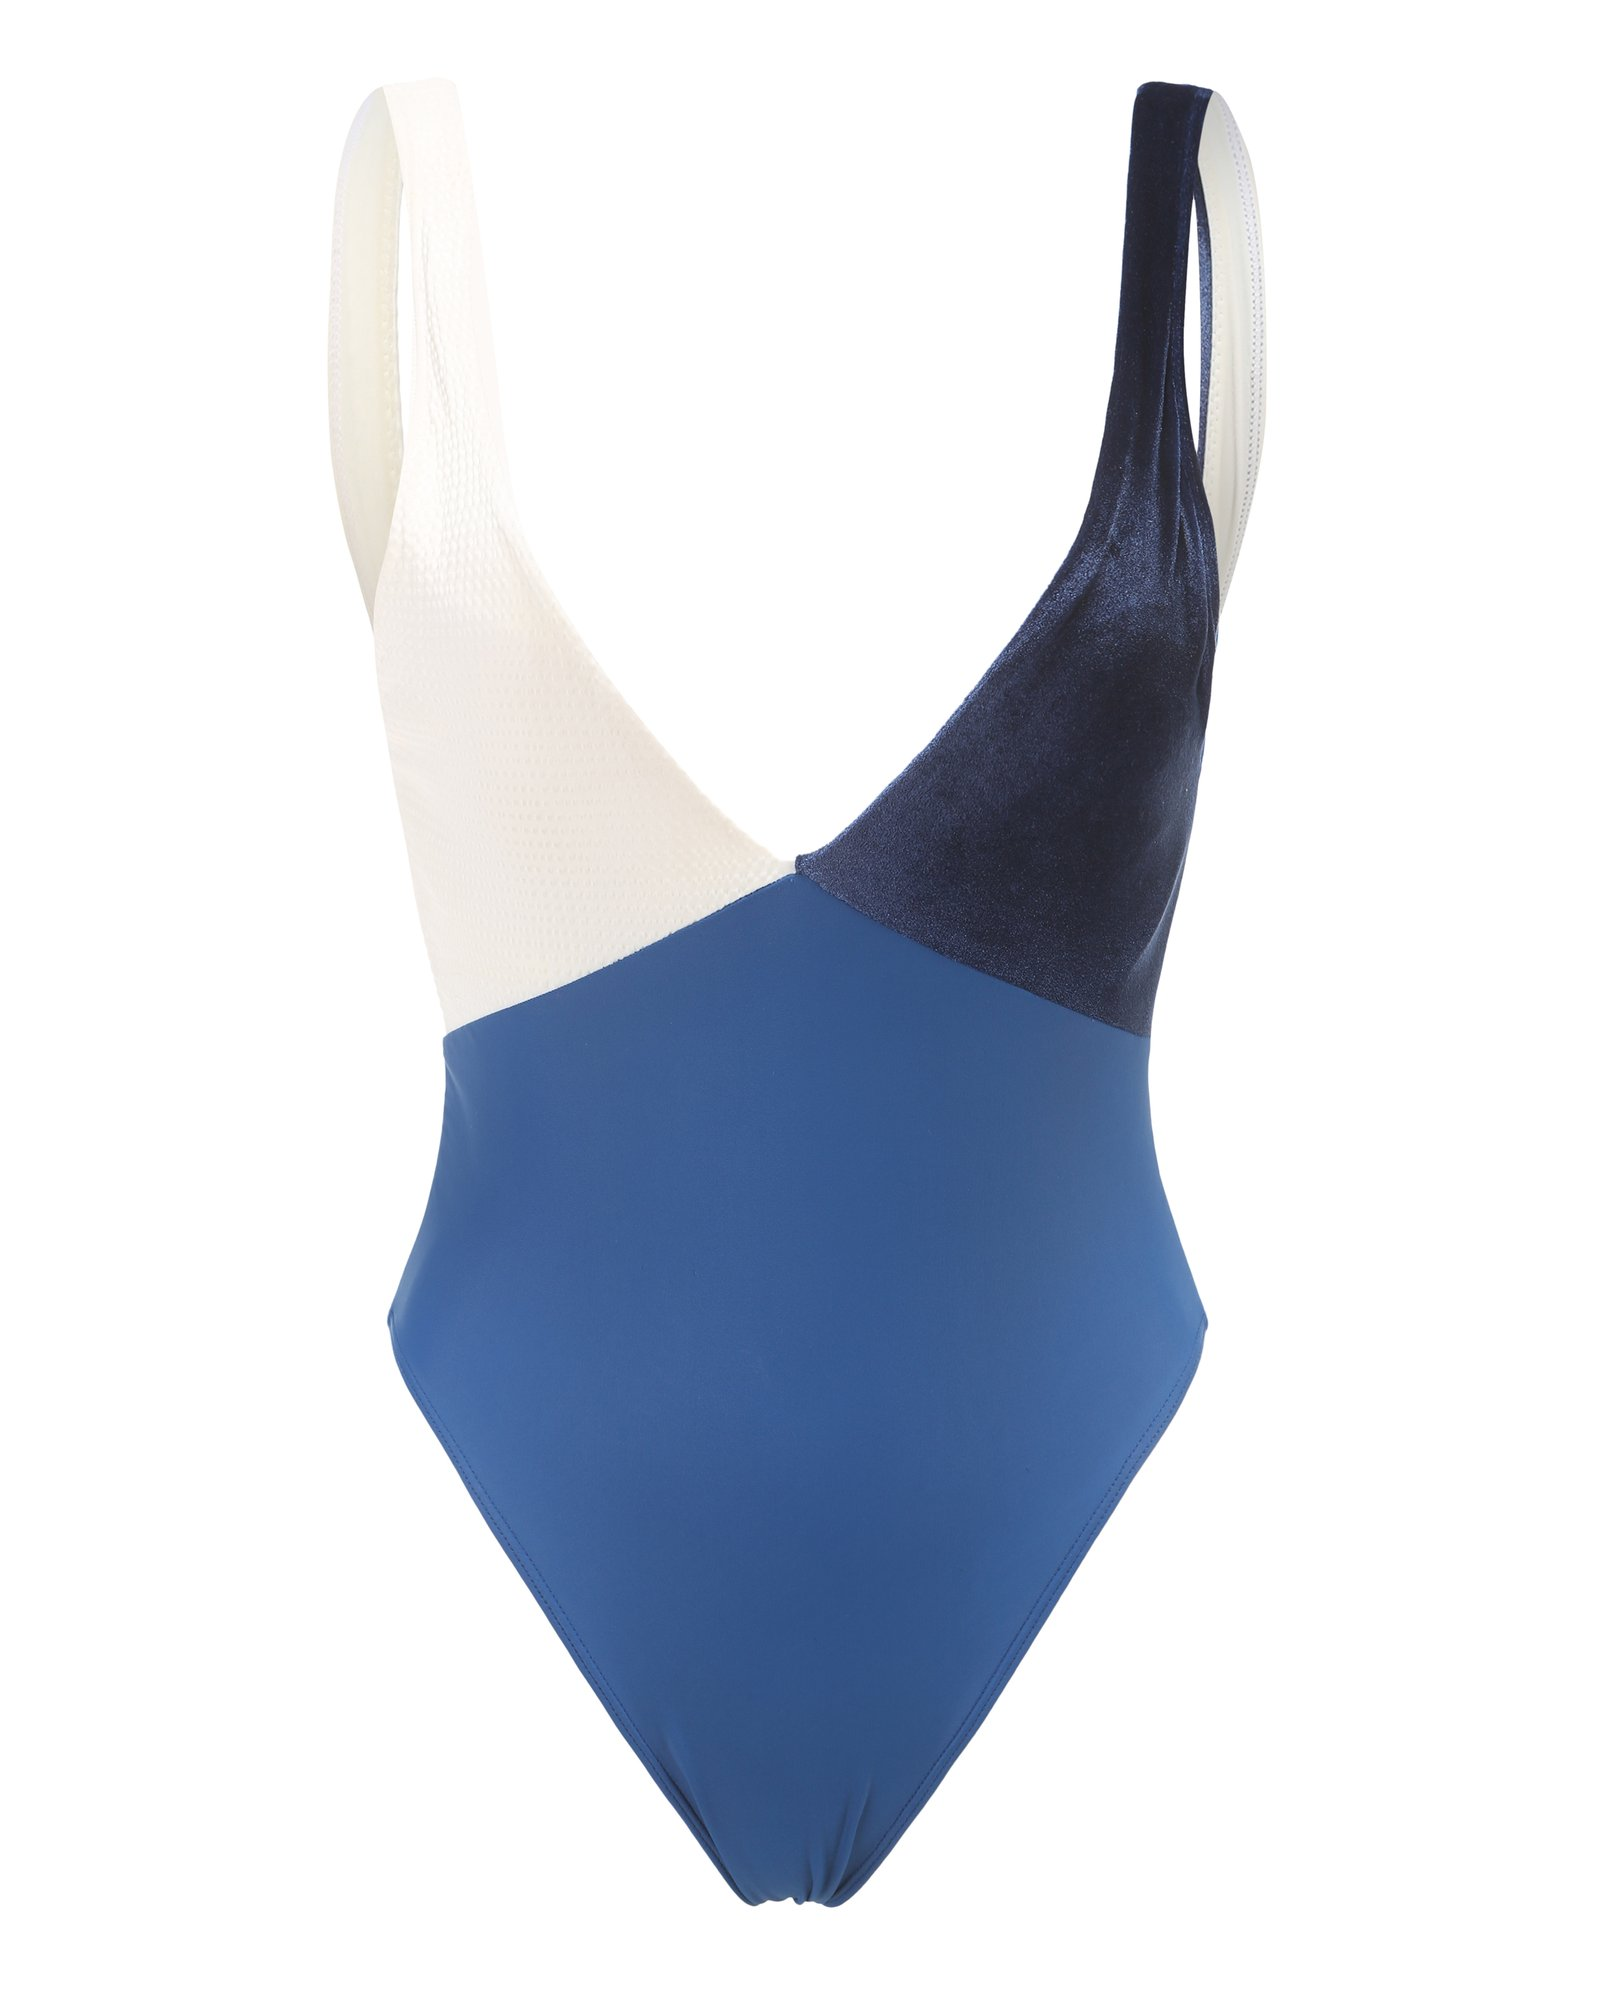 Cori Swimsuit in Pure Shores by PAPER London on curated-crowd.com